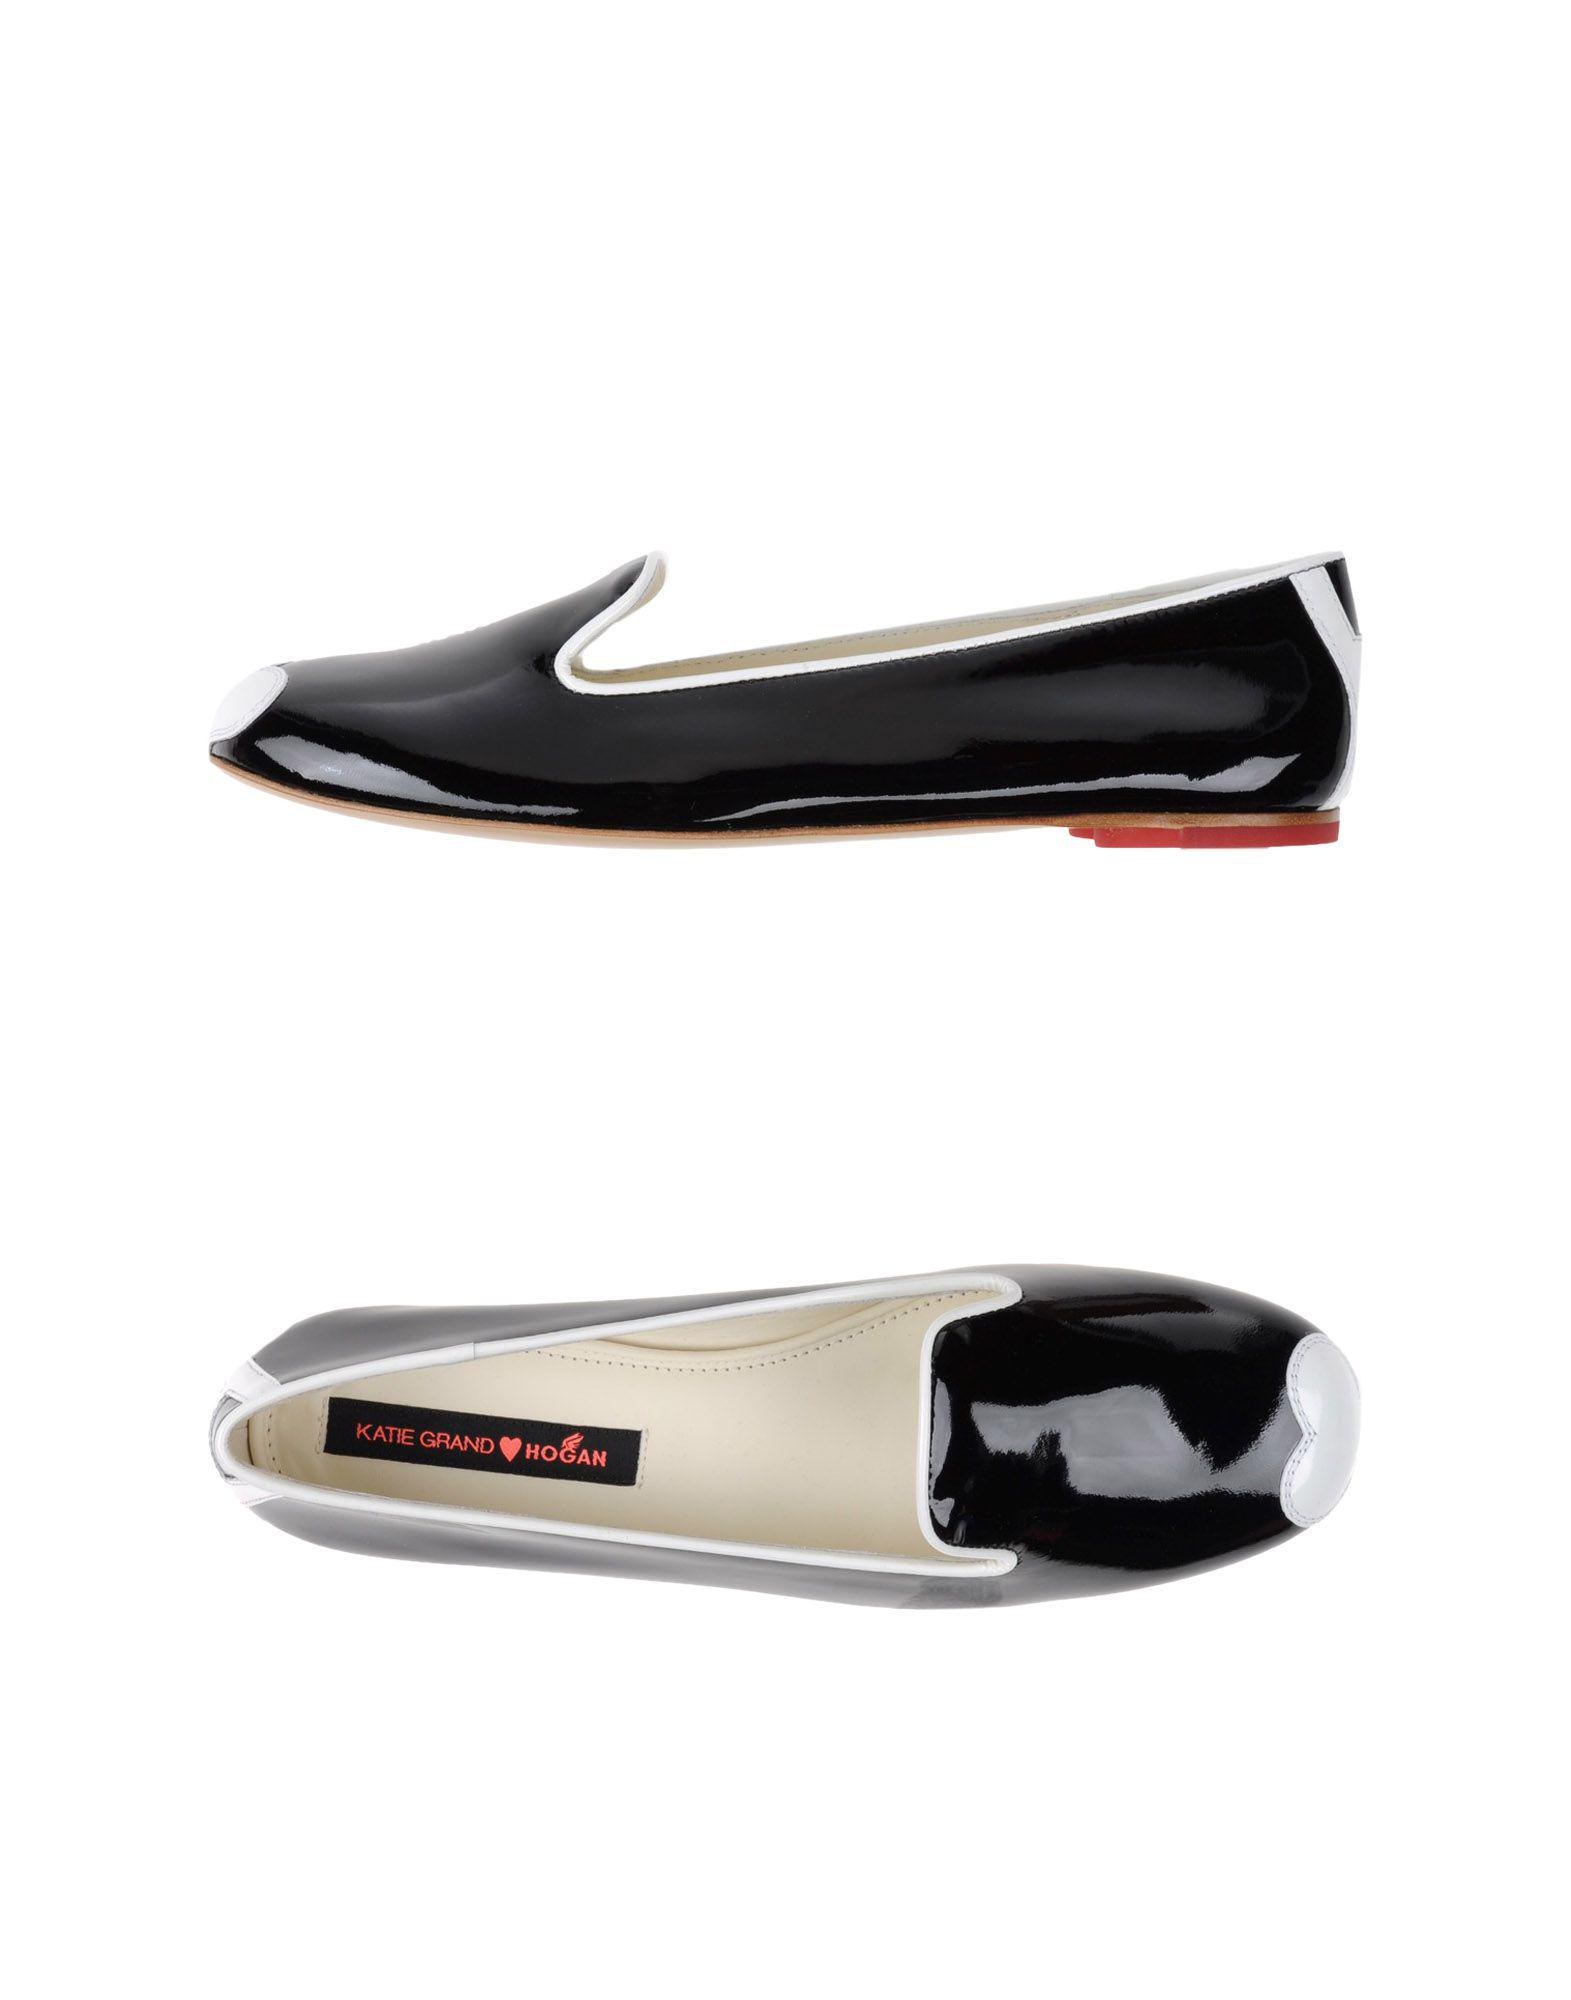 clearance view KATIE GRAND LOVES HOGAN Ballet flats sale 2014 cheap top quality sale brand new unisex 6oPeu